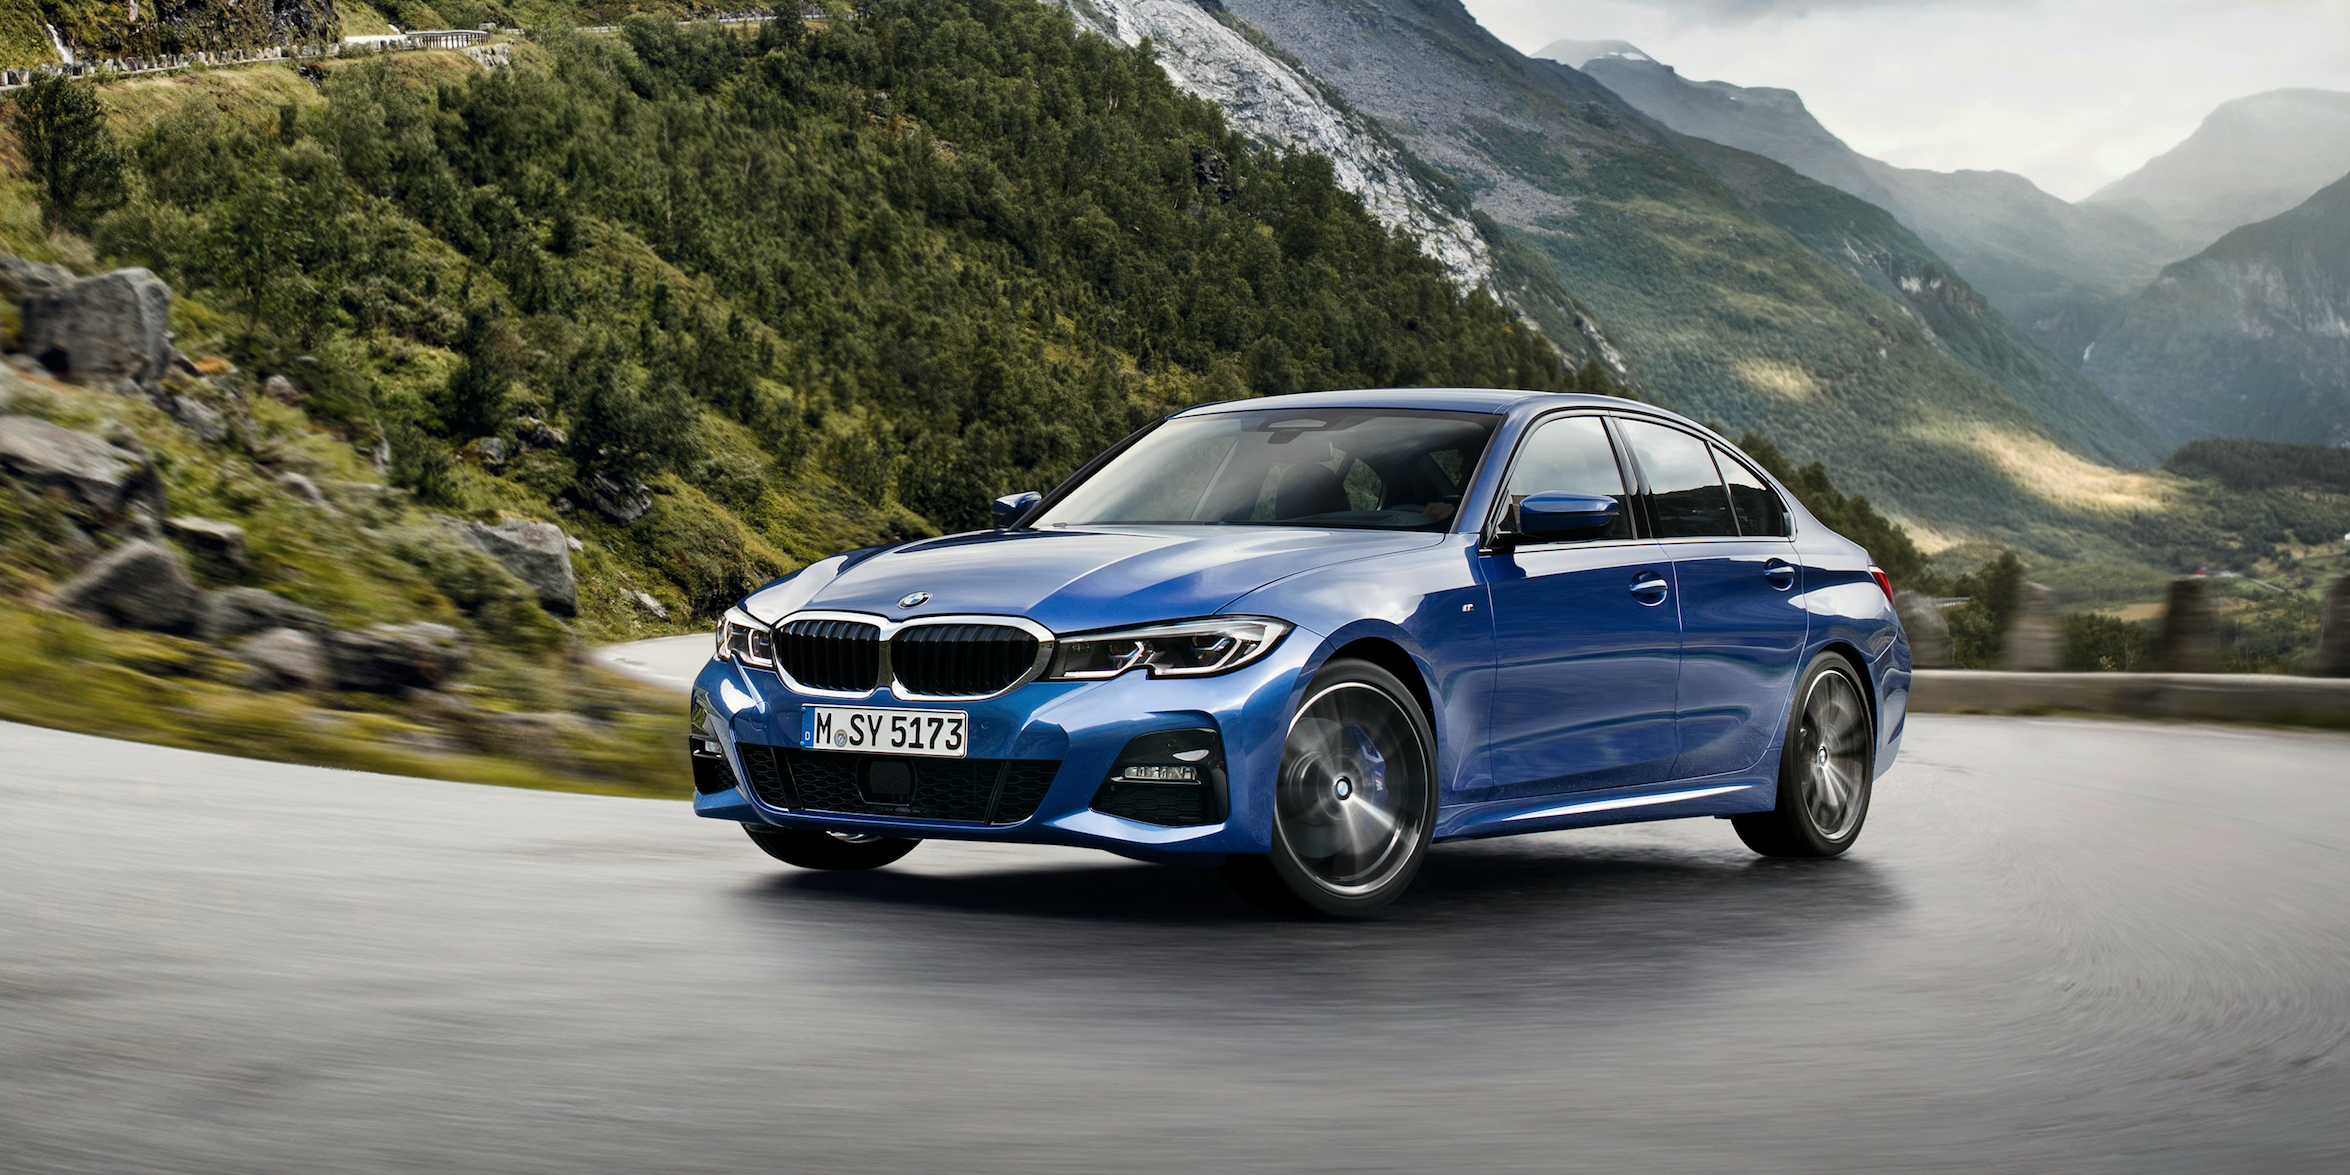 Bmw 3 Series G20 >> All-New 2019 BMW 3-Series Revealed - New 3 Series Pictures, HP, Specs, and Pricing